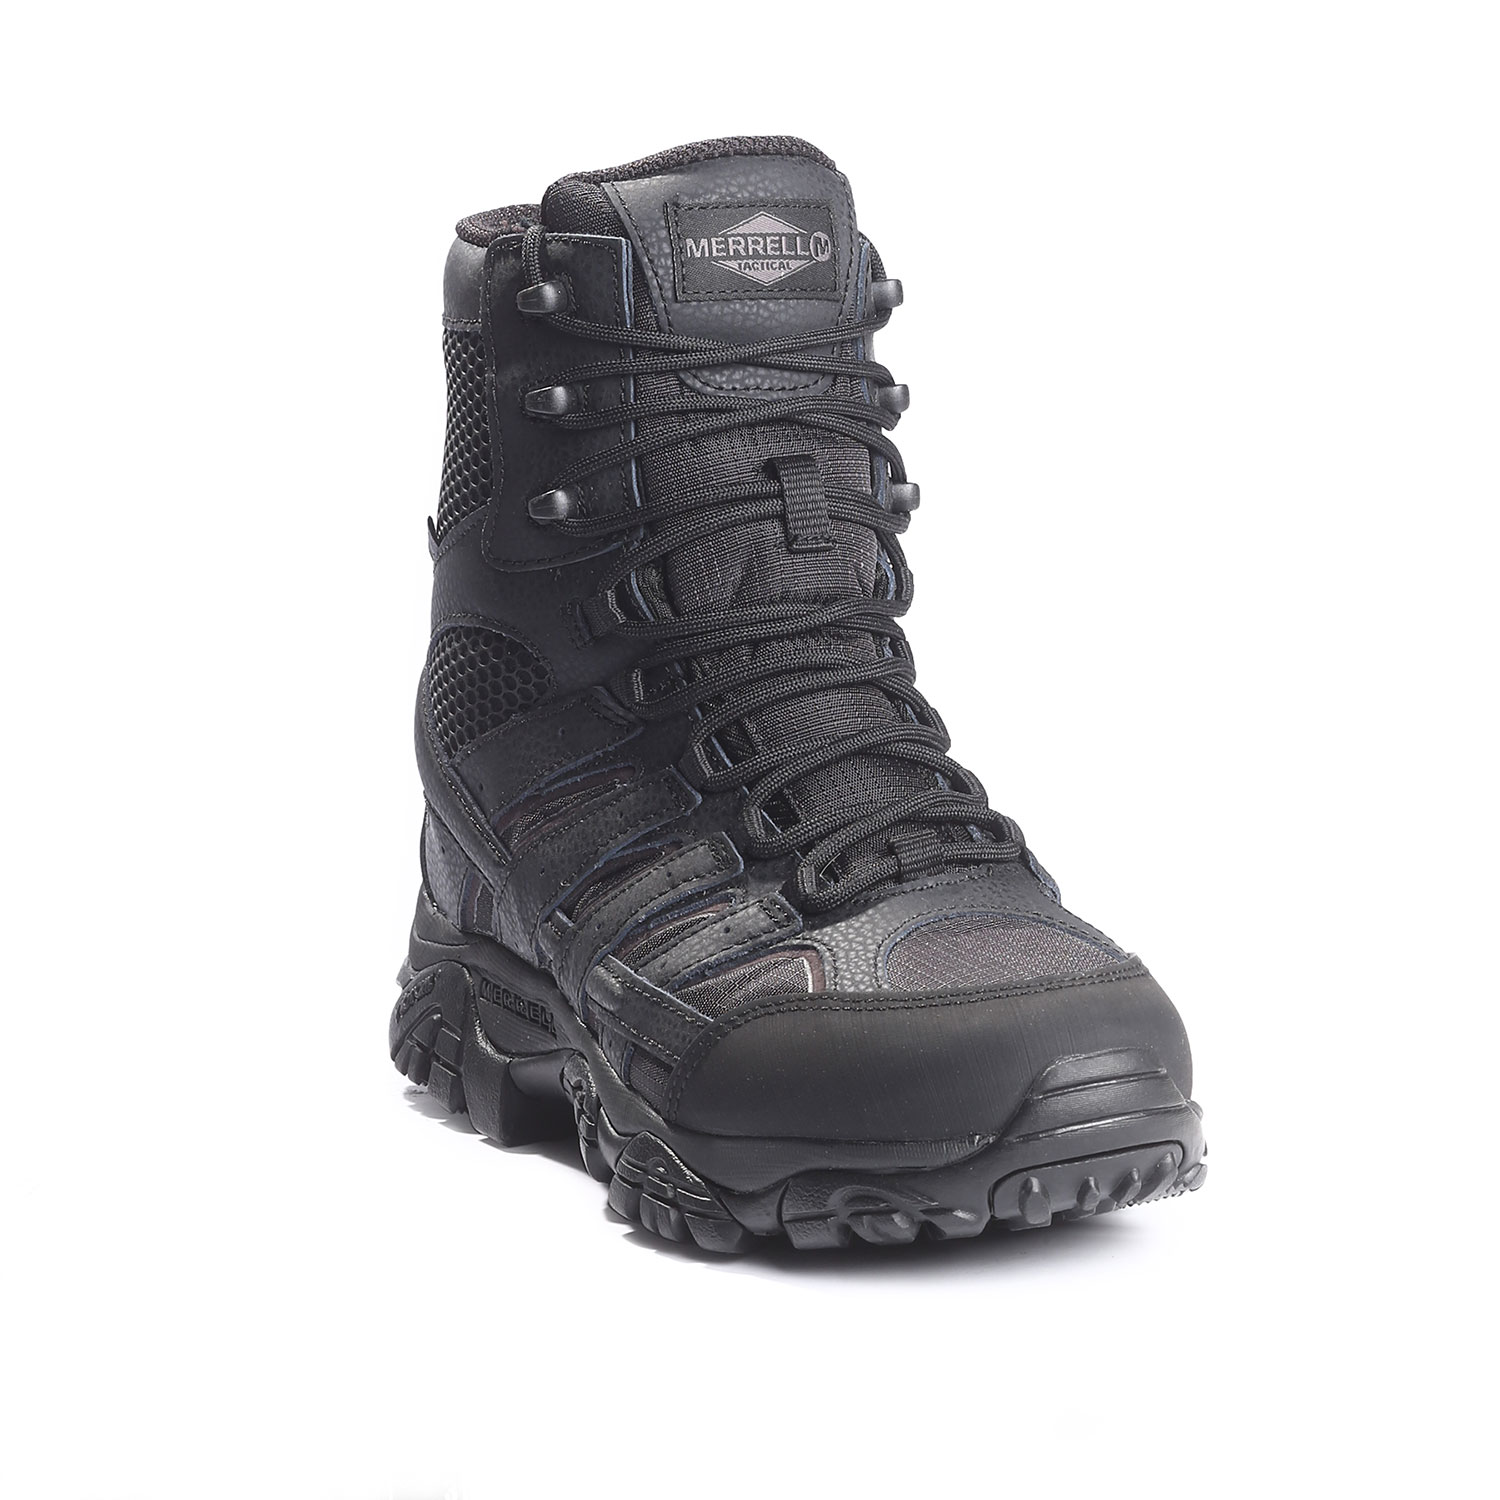 30d15a682d Merrell Moab 2 Tactical Waterproof Side-Zip 8